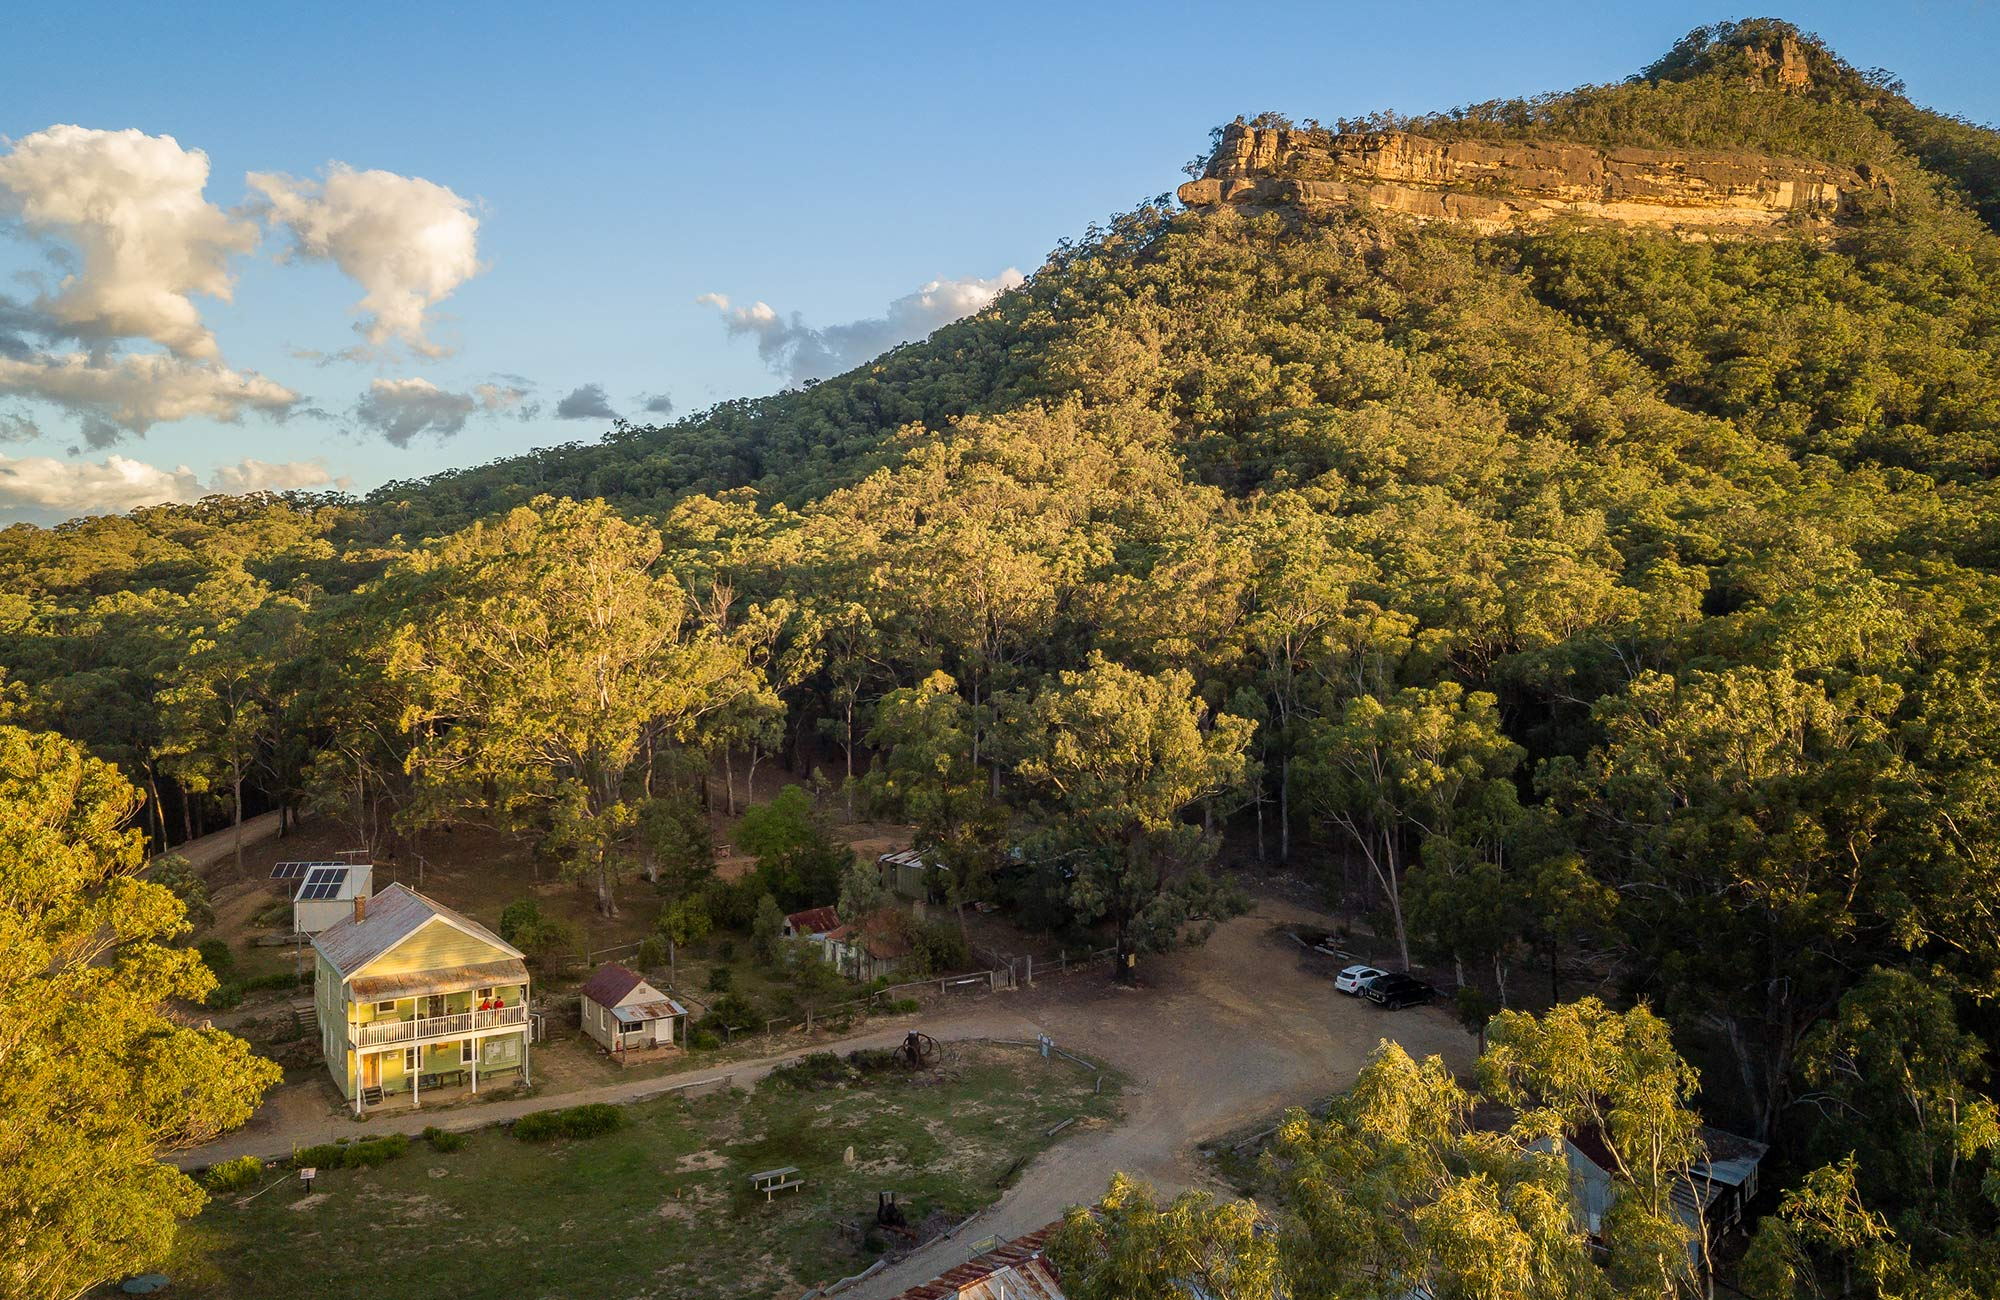 Arial view of Post Office Lodge at Yerranderie Private Town in Yerranderie Regional Park. Photo: John Spencer/OEH